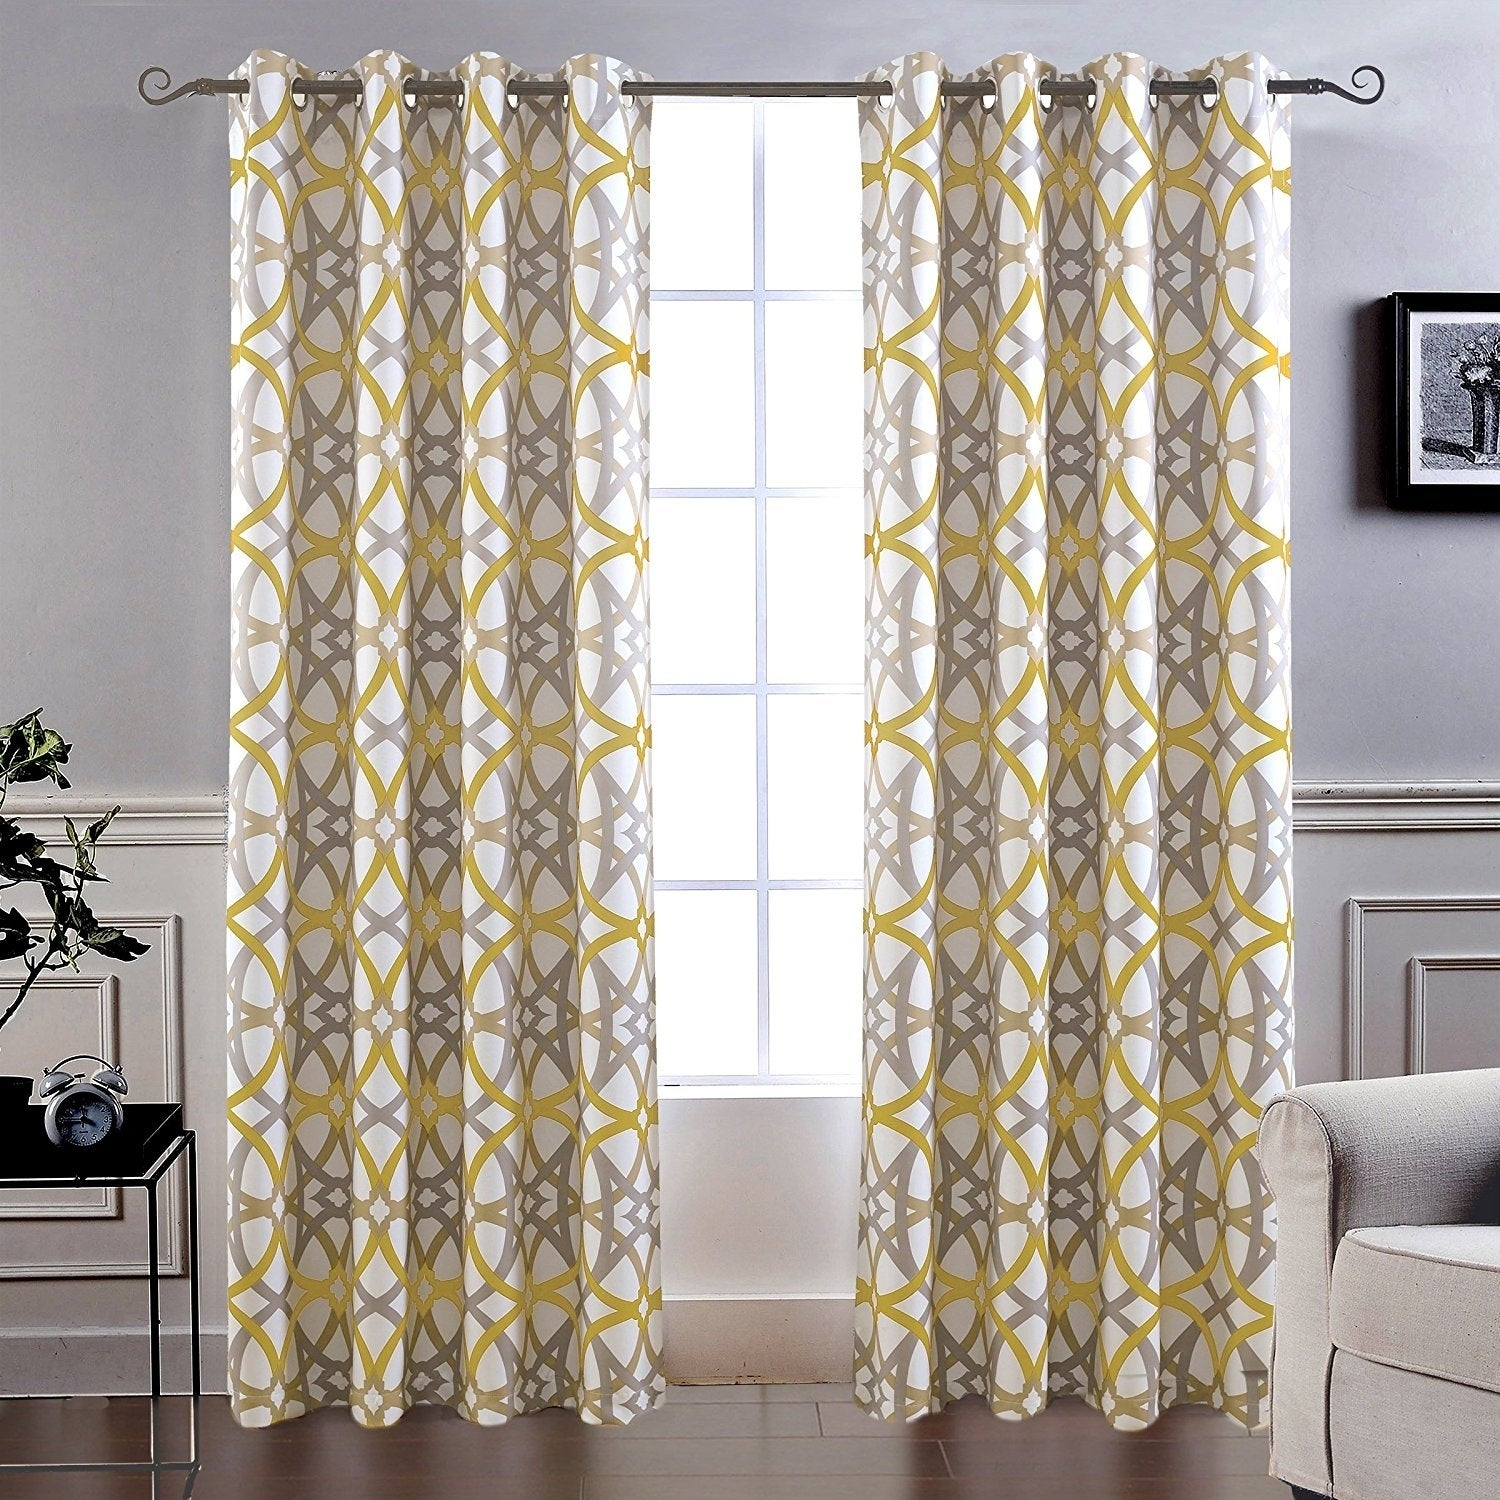 Carson Carrington Jarvenpaa Insulated Blackout Grommet Window Curtain Panel Pair With Regard To Insulated Blackout Grommet Window Curtain Panel Pairs (View 8 of 20)